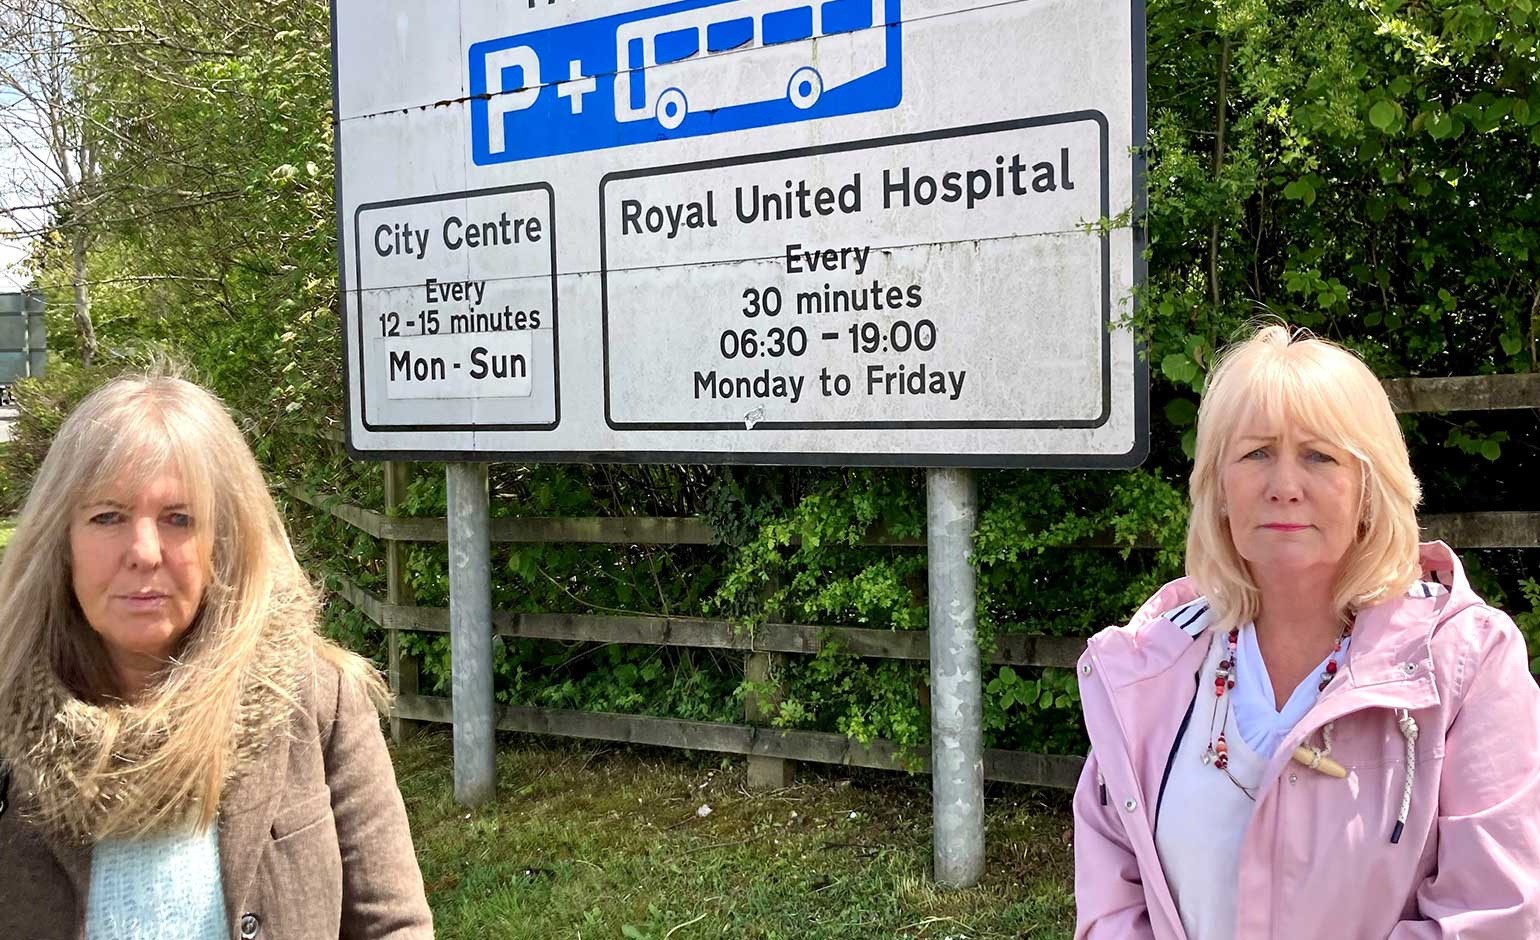 Councillors call for improved lighting at Park & Ride site to improve safety